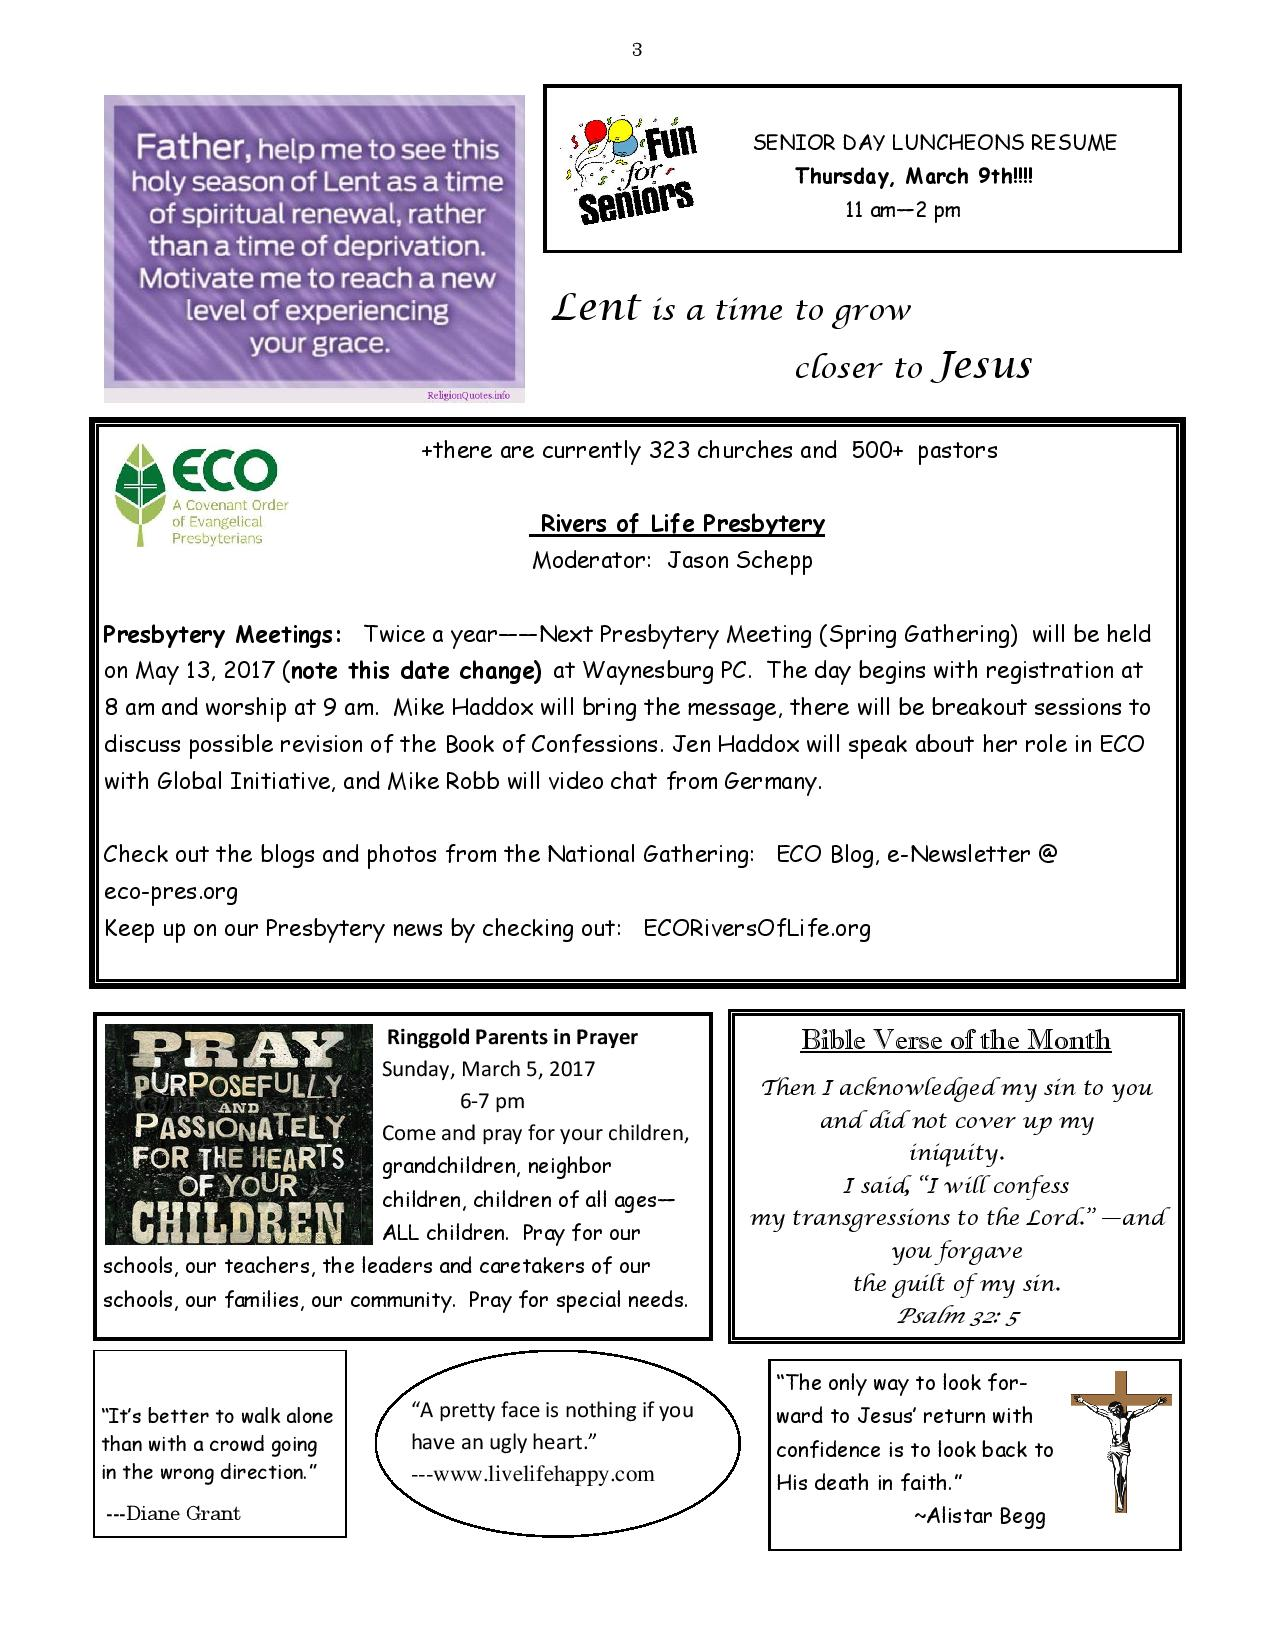 MARCH NEWSLETTER (1)-page-003.jpg